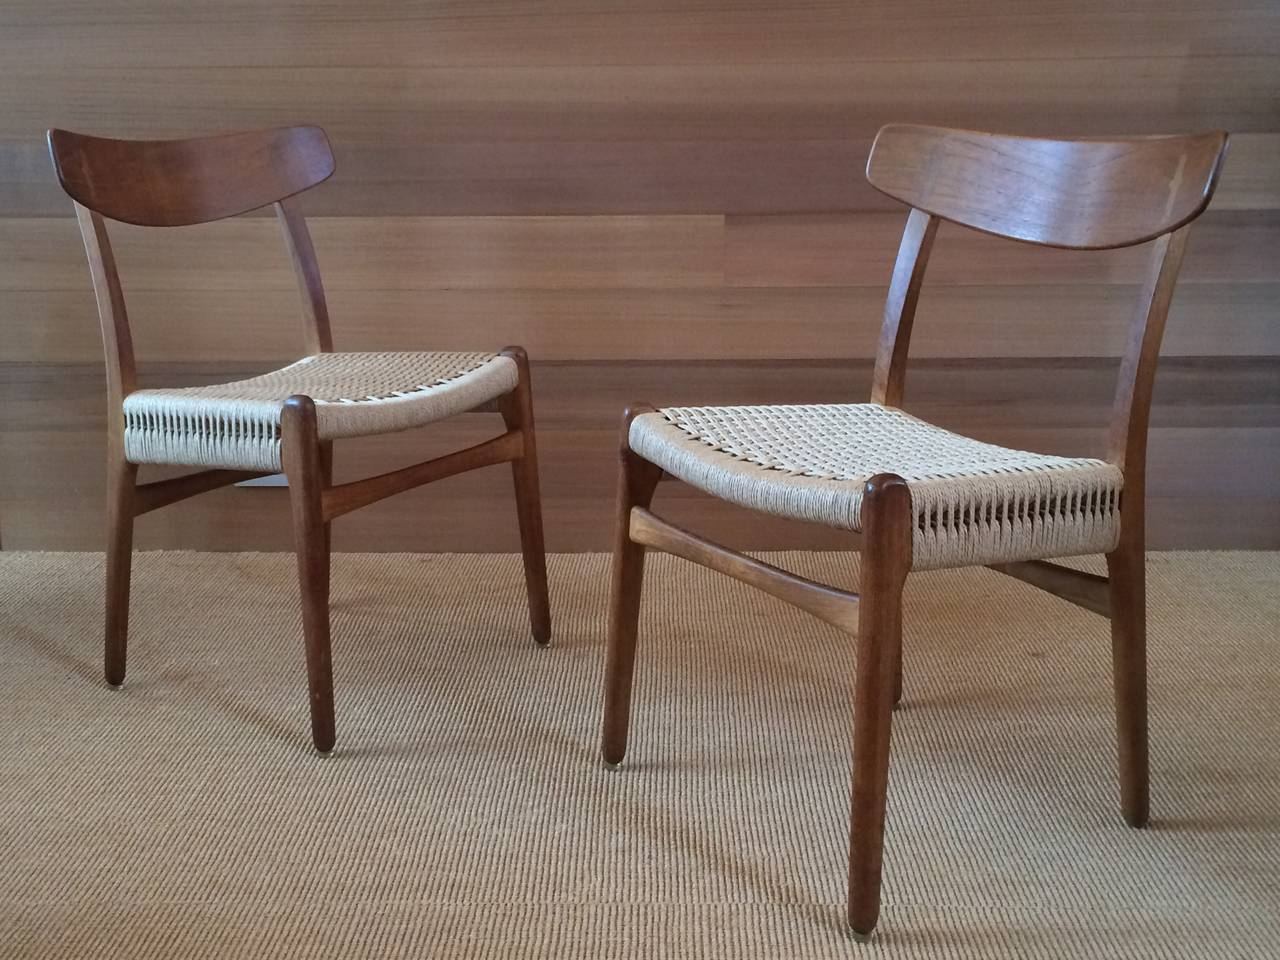 Museum Quality Hans Wegner Chairs in Oak and Paper Cord, 1950 2